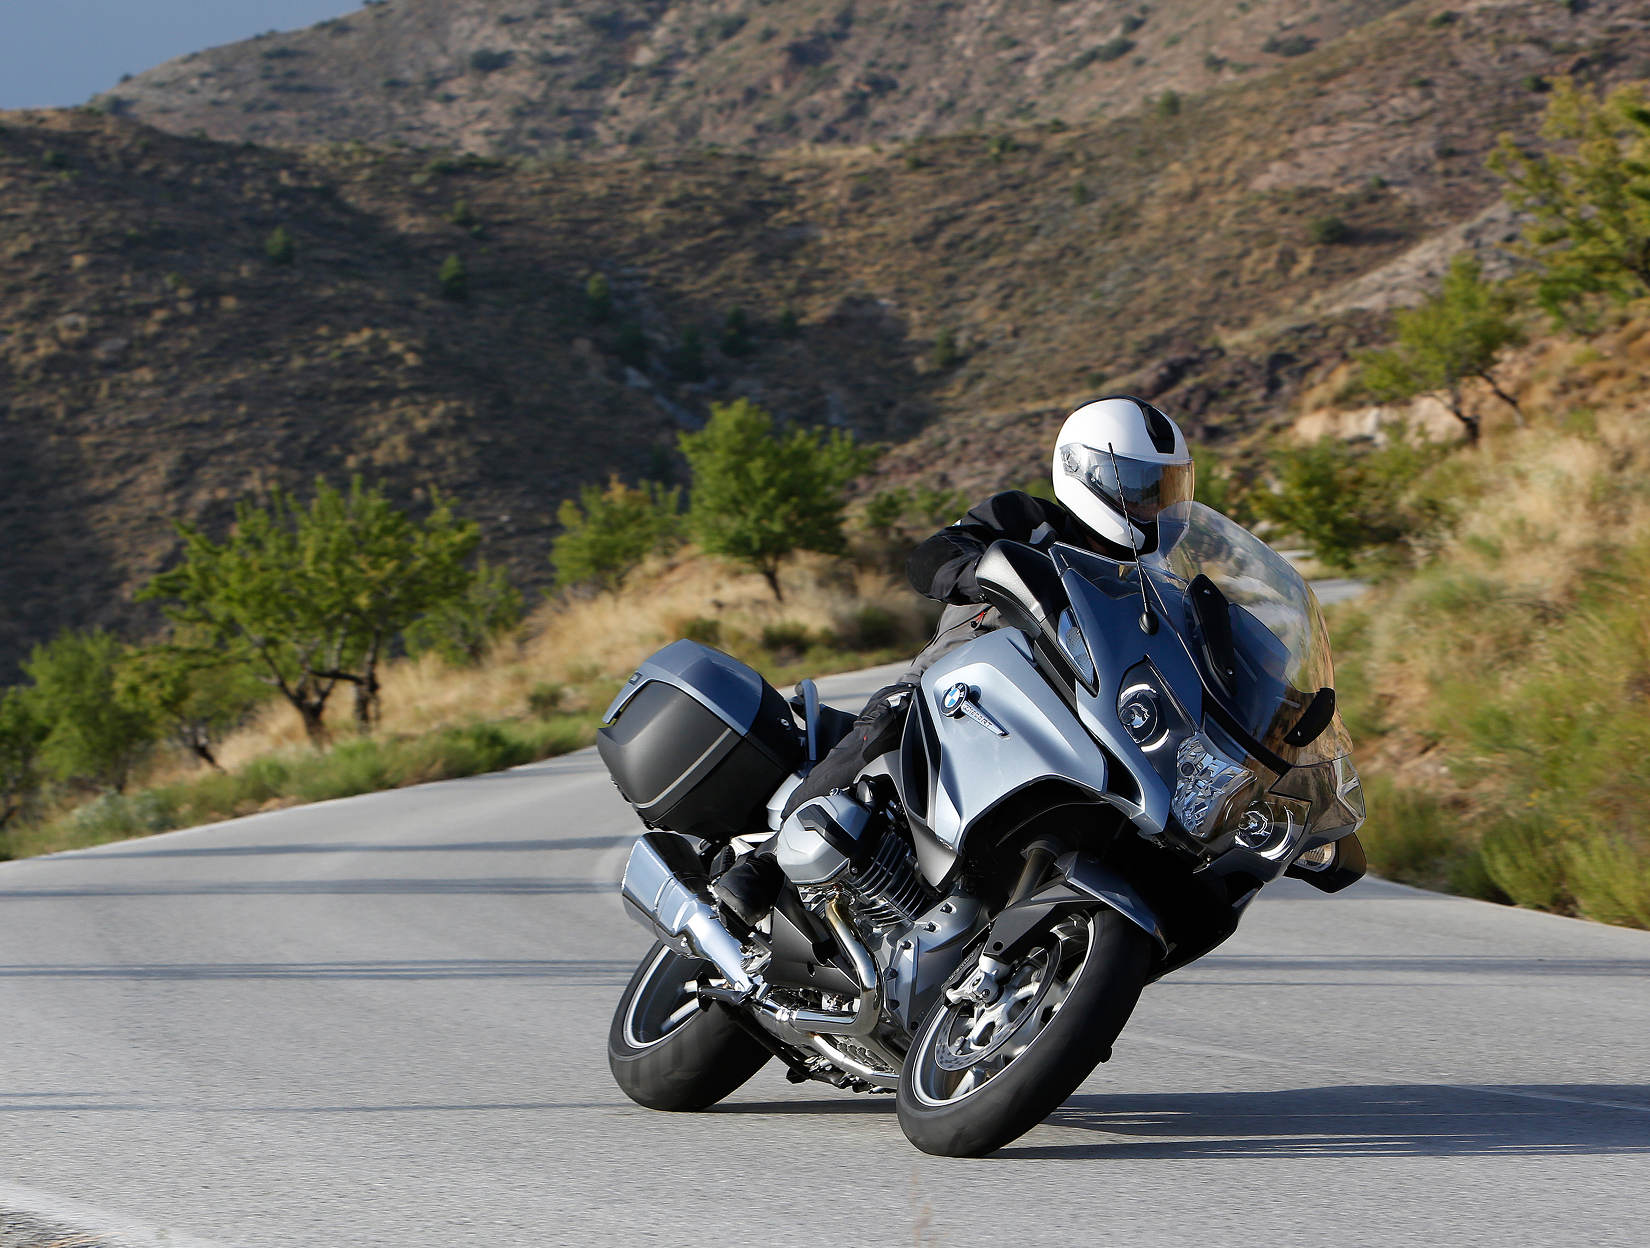 BMW R1200RT images #9062